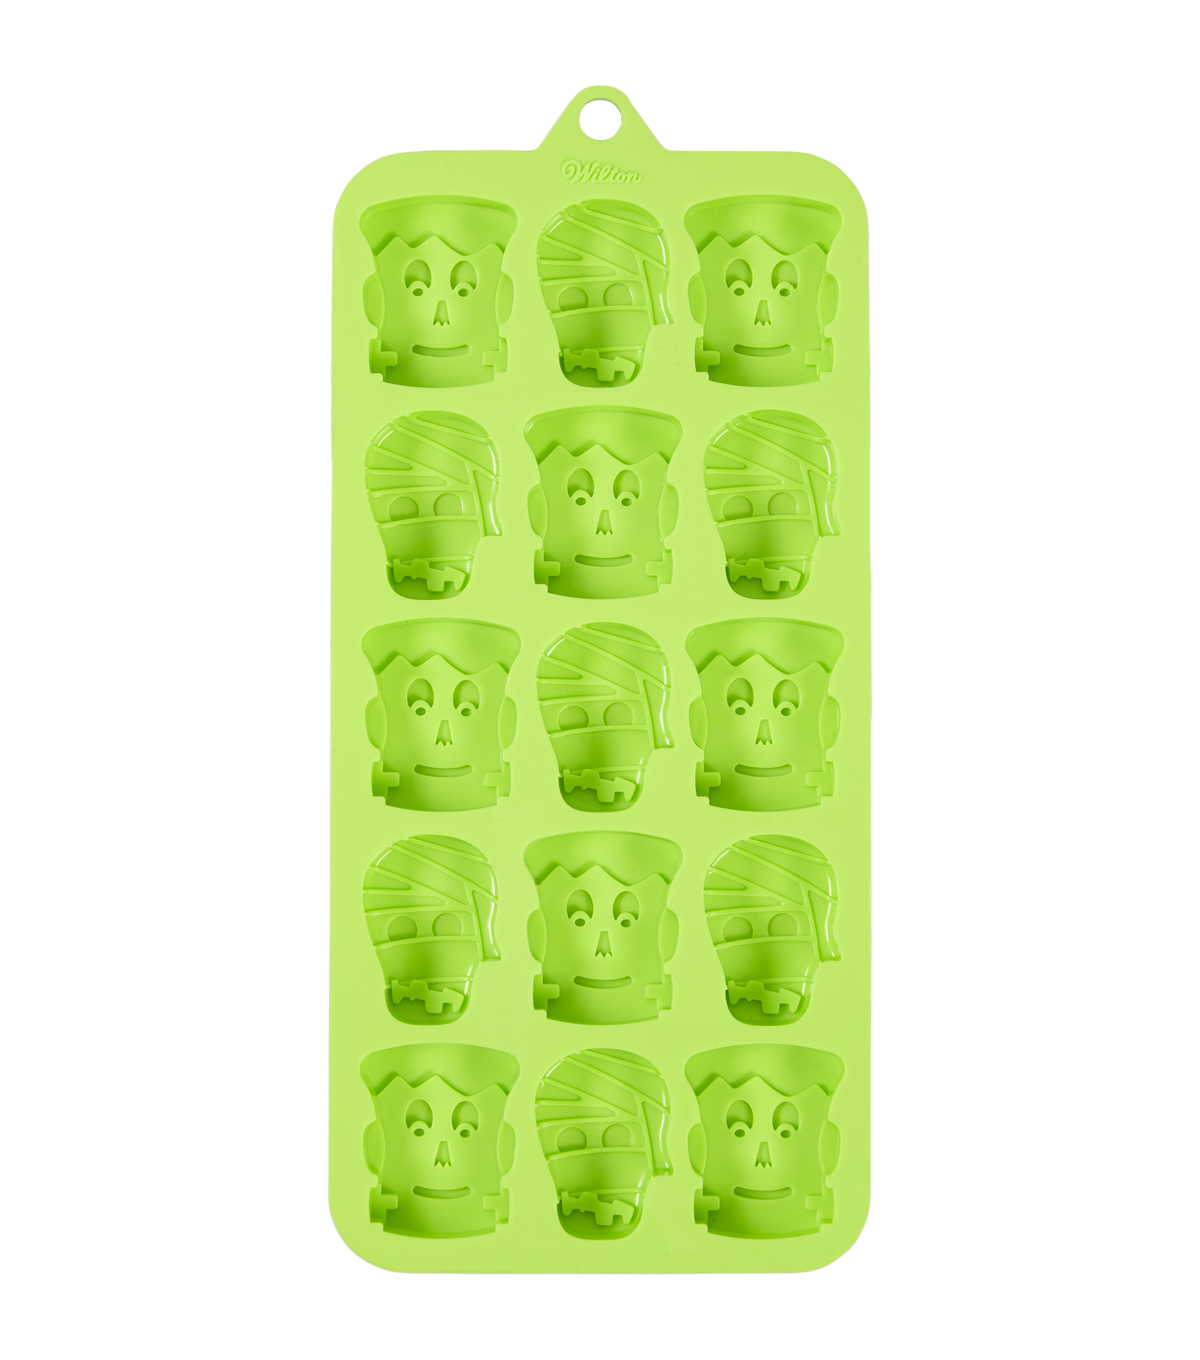 Wilton Maker\u0027s Halloween Silicone Candy Mold-Frankenstein Faces